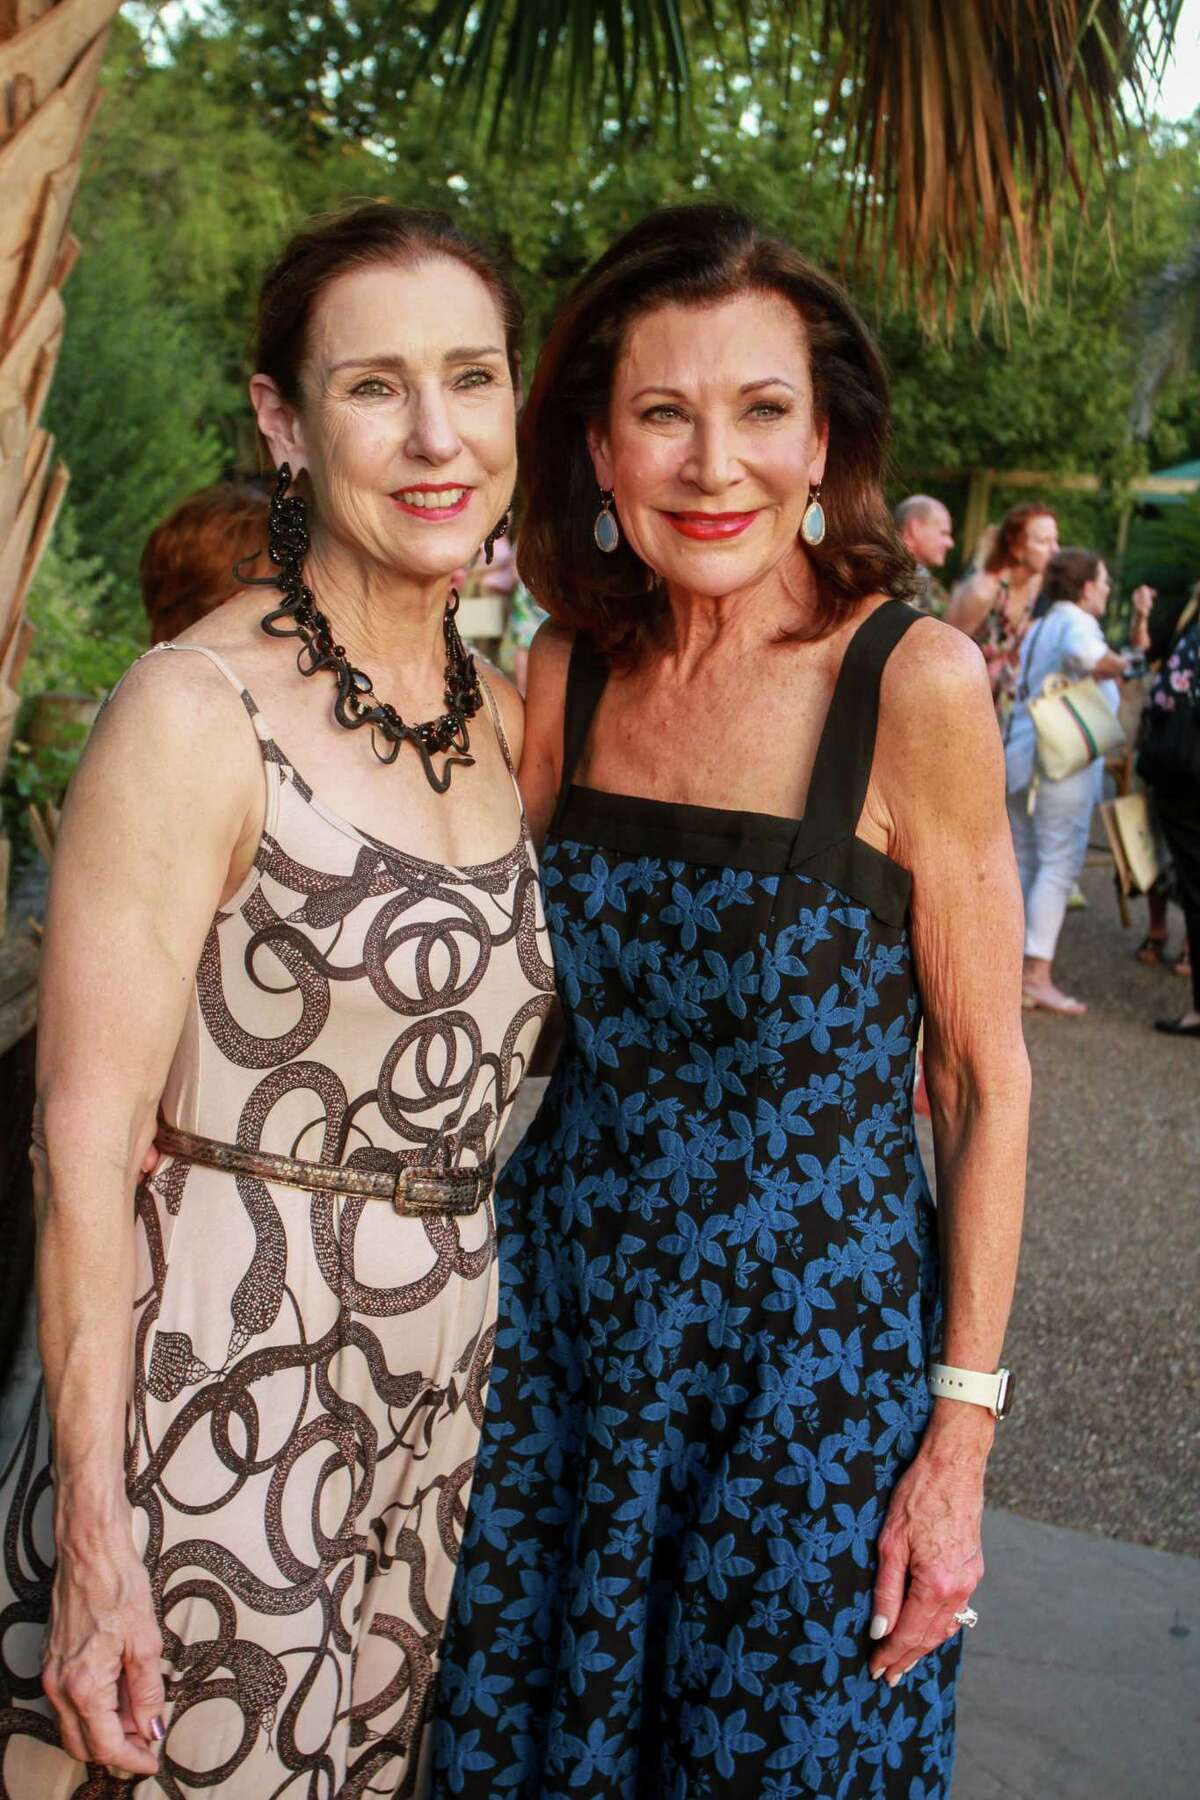 Mary Maxey, left, and Betty Hrncir at the Houston Zoo's 12th annual Wildlife Conservation Gala on October 10, 2019.